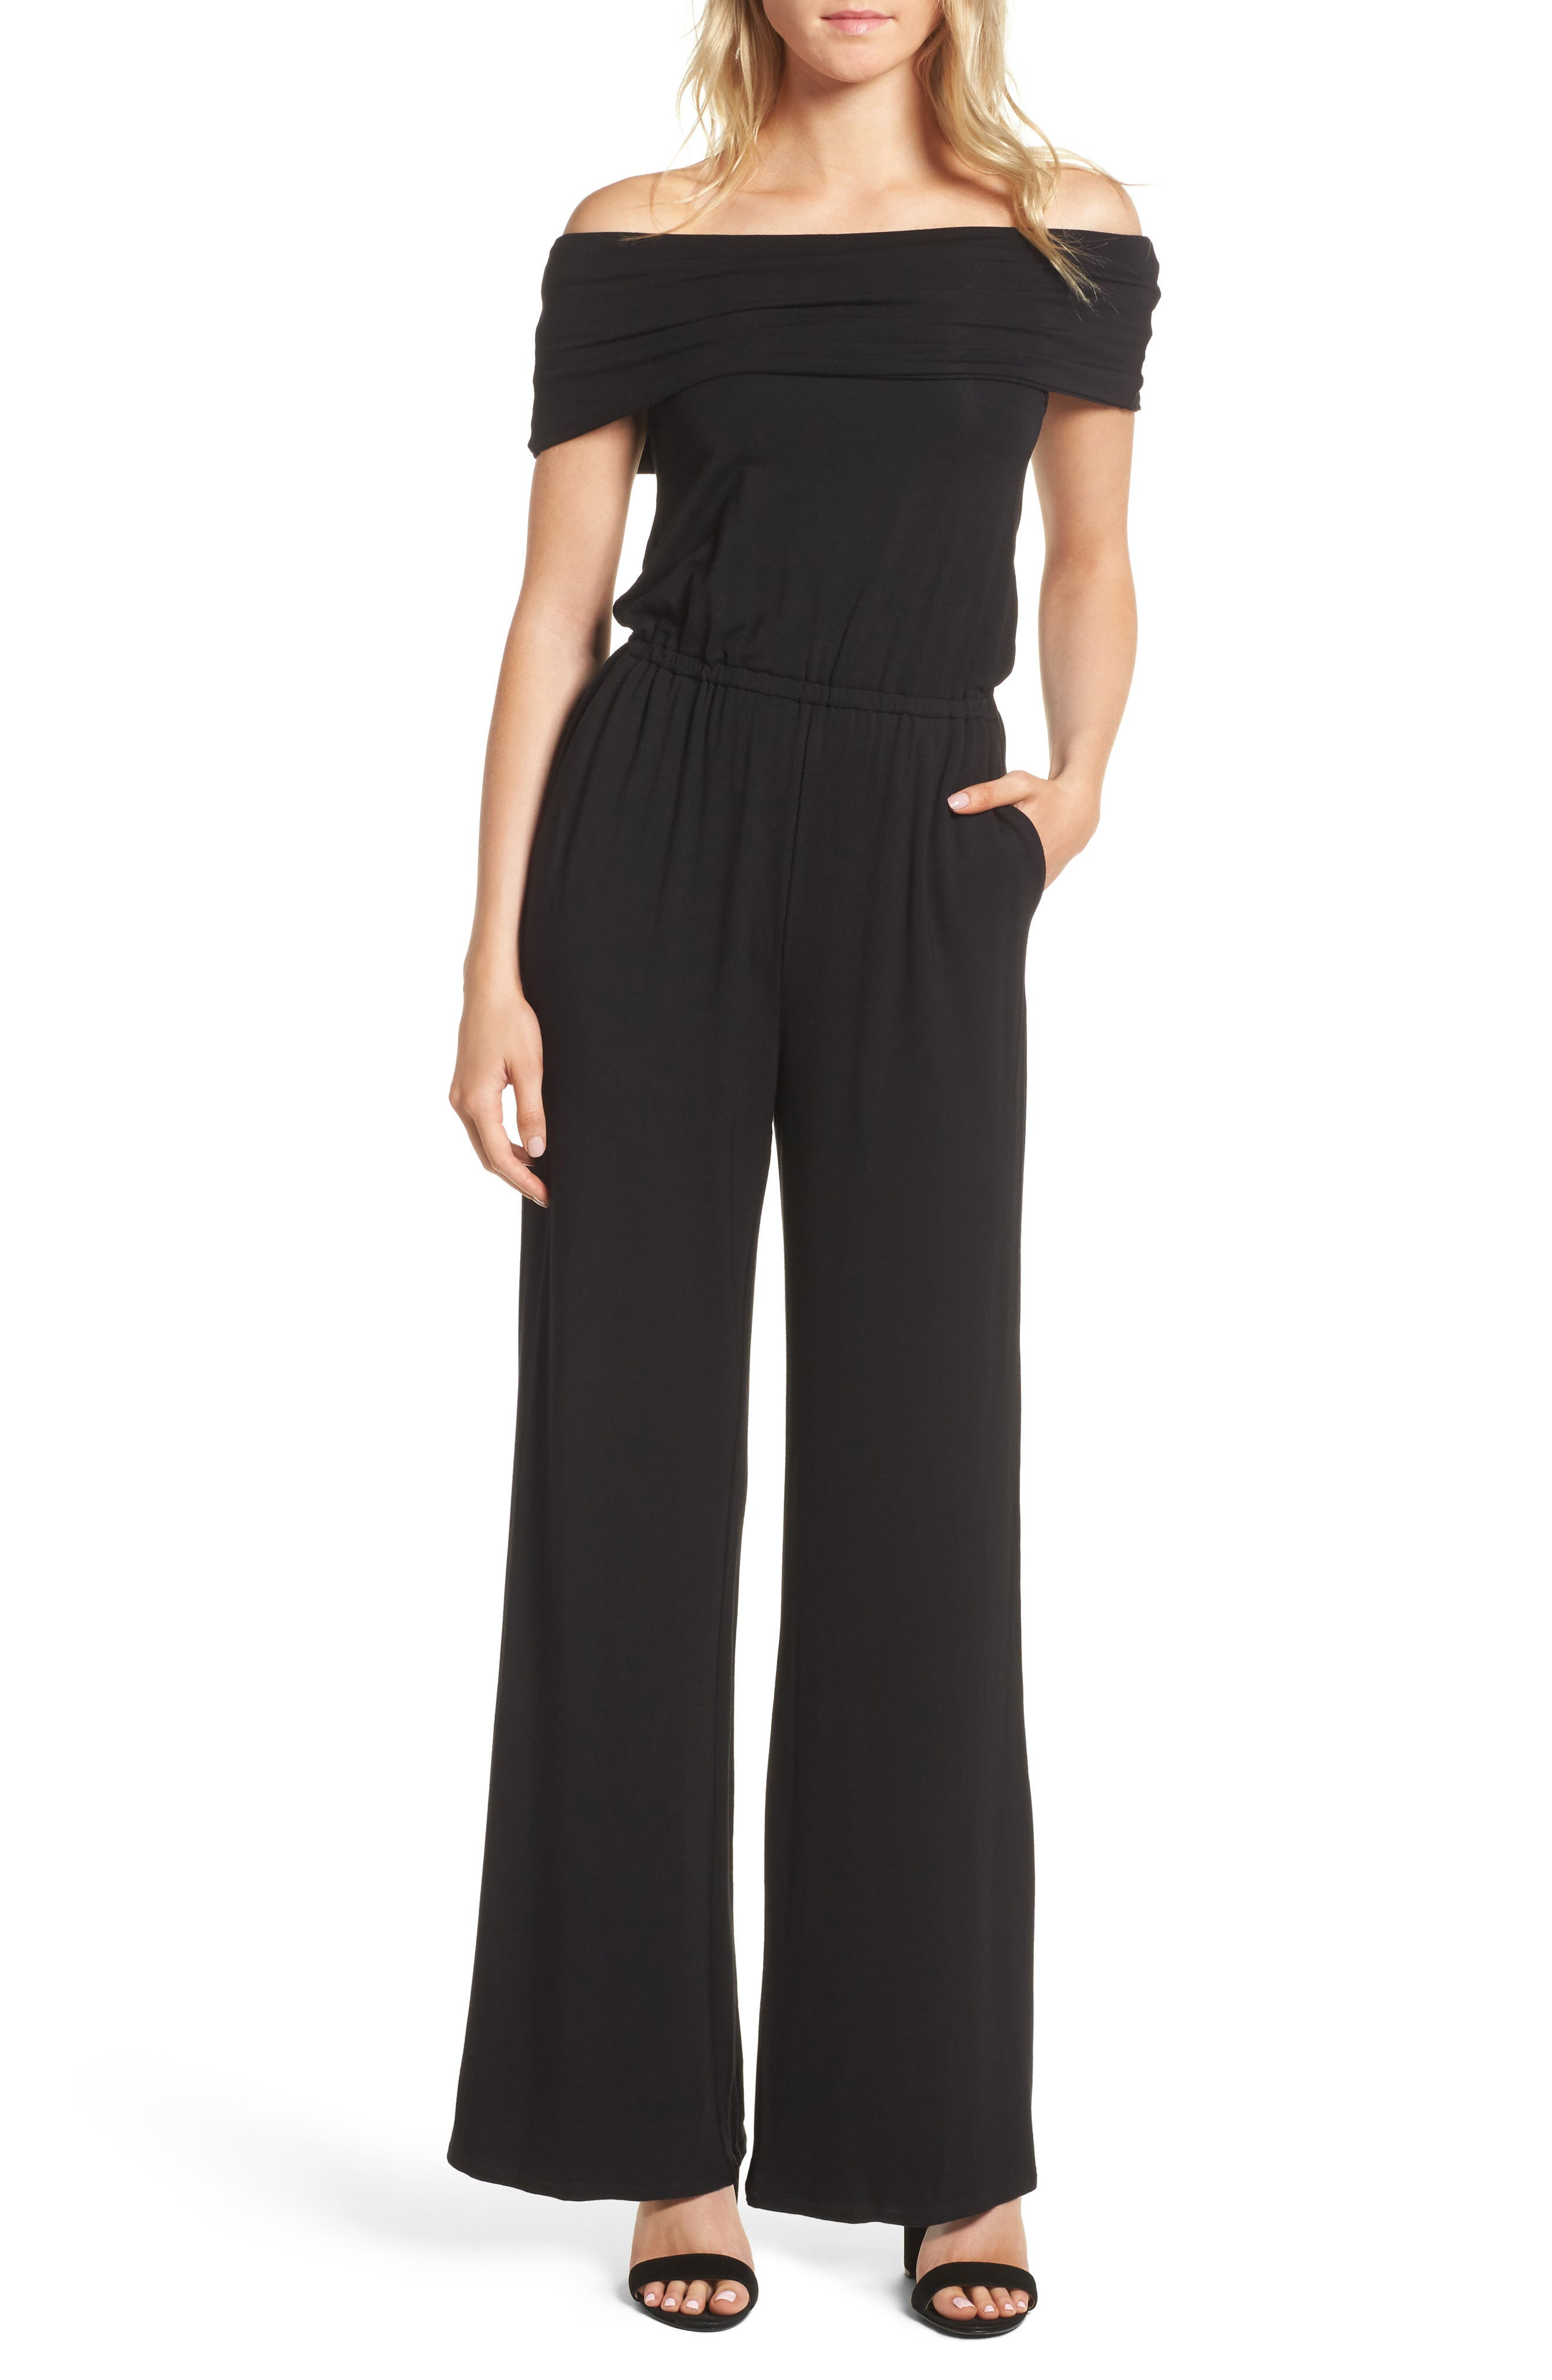 cupcakes and cashmere Farida Off the Shoulder Jumpsuit